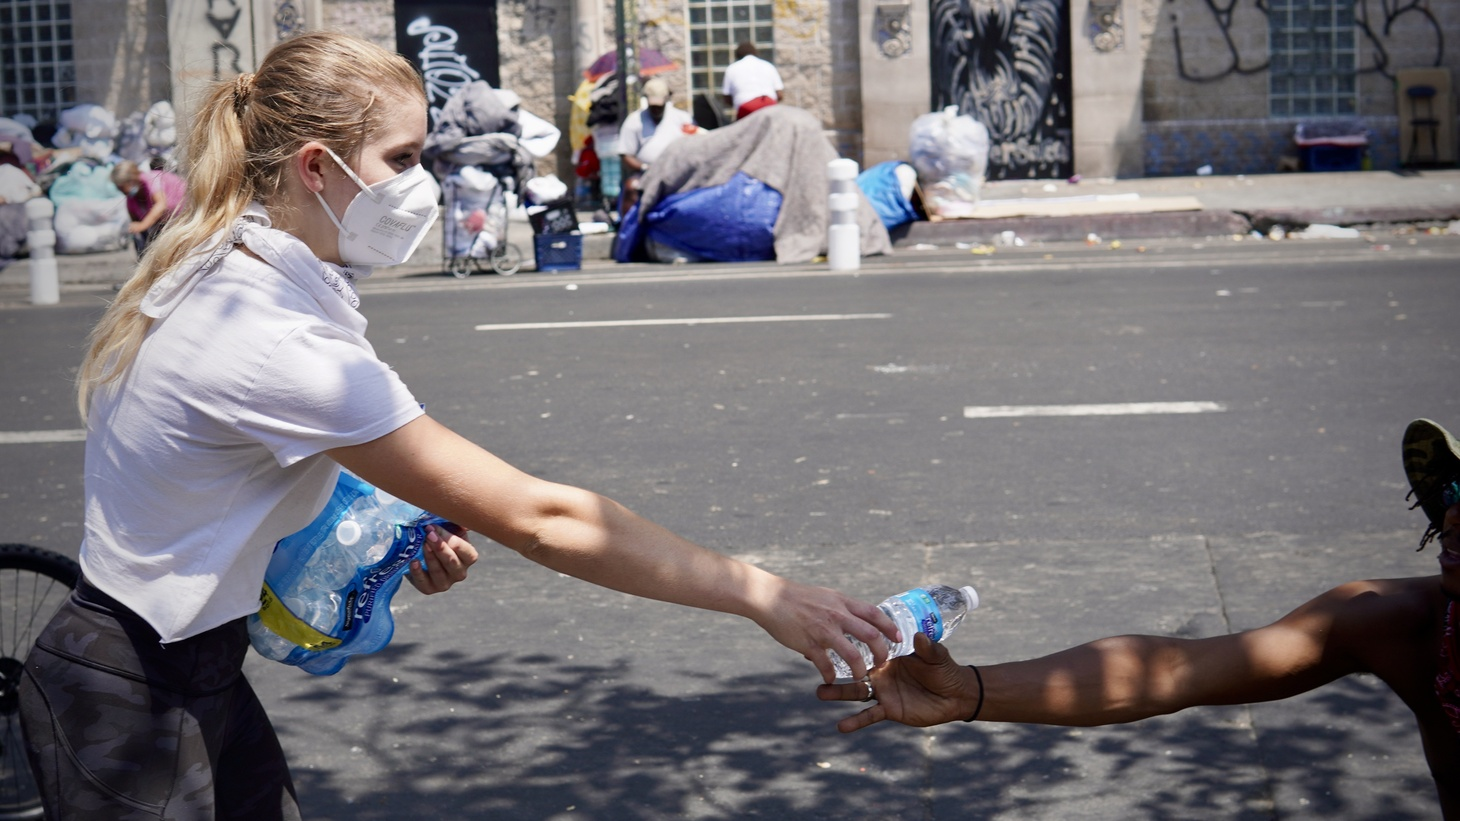 Water Drop LA, founded by USC students Aria Cataño and Catie Cummings, has been delivering more than 1,000 gallons of water every Sunday to Skid Row residents since mid-July.